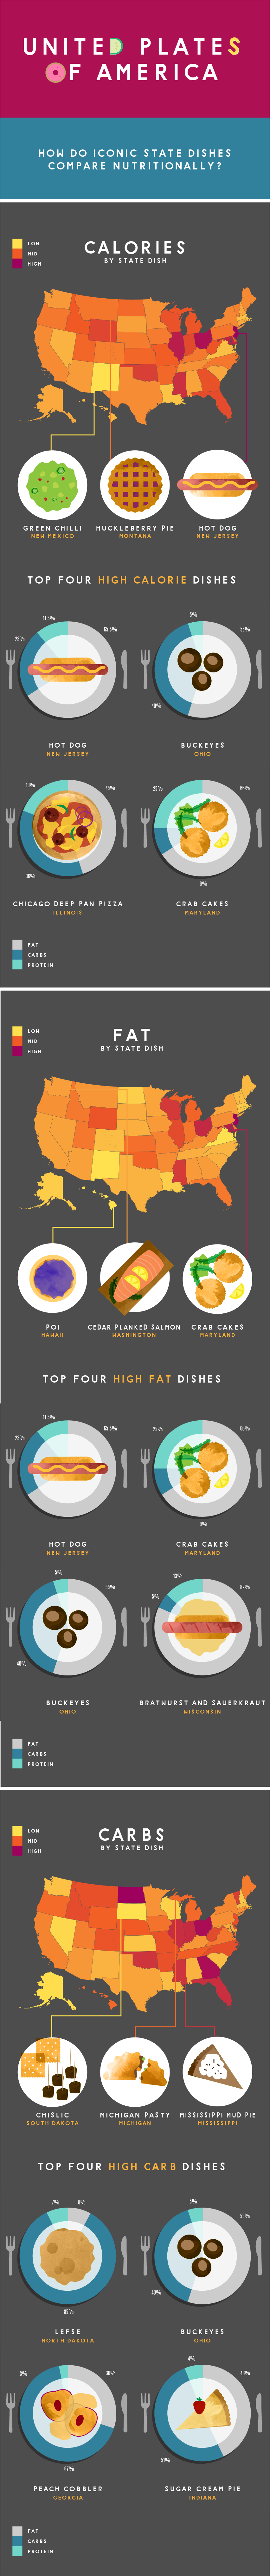 how healthy is america